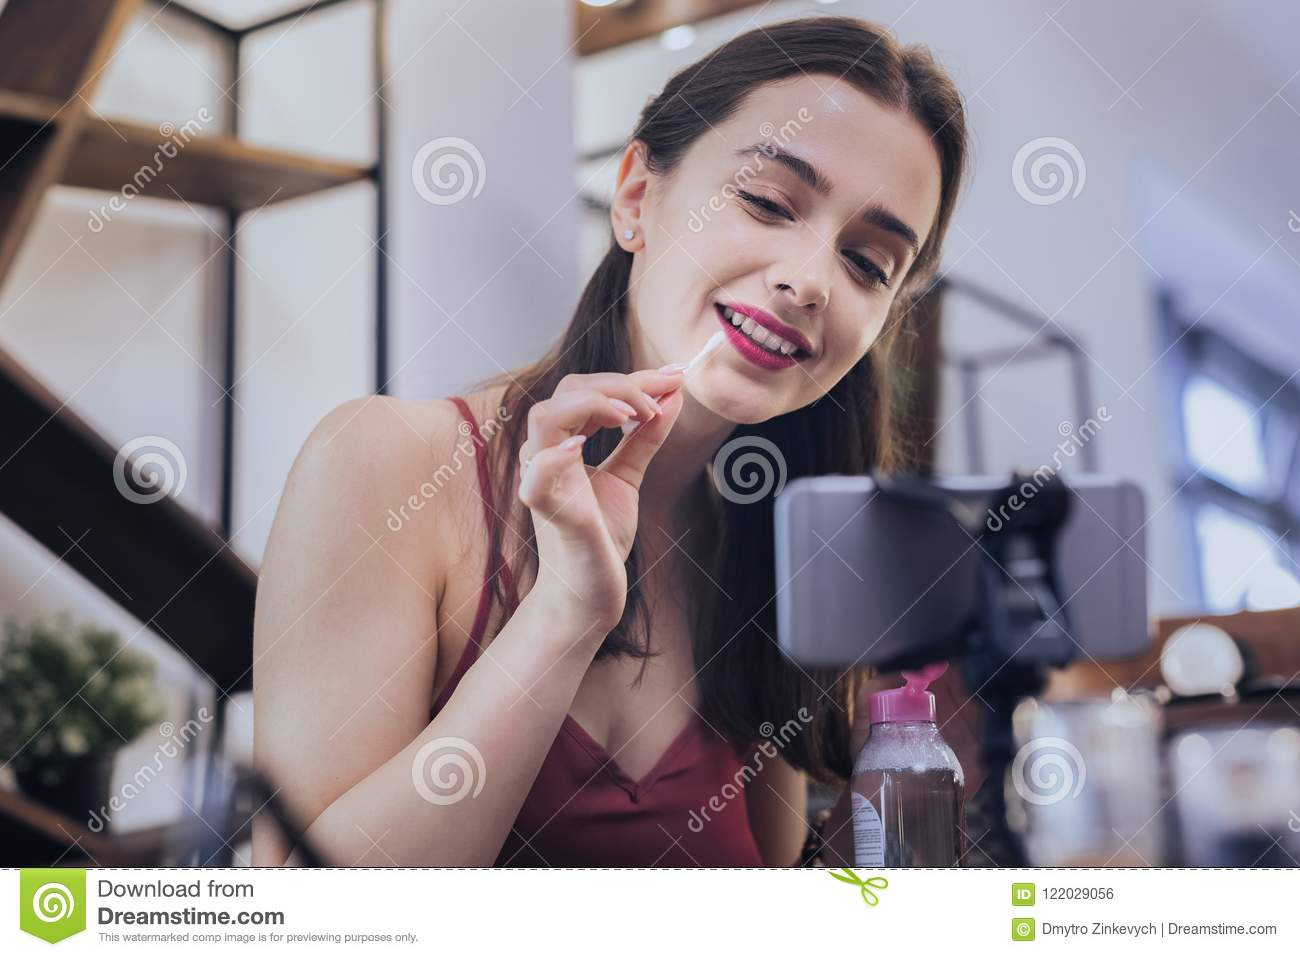 Dark-haired cheerful woman fixing her makeup